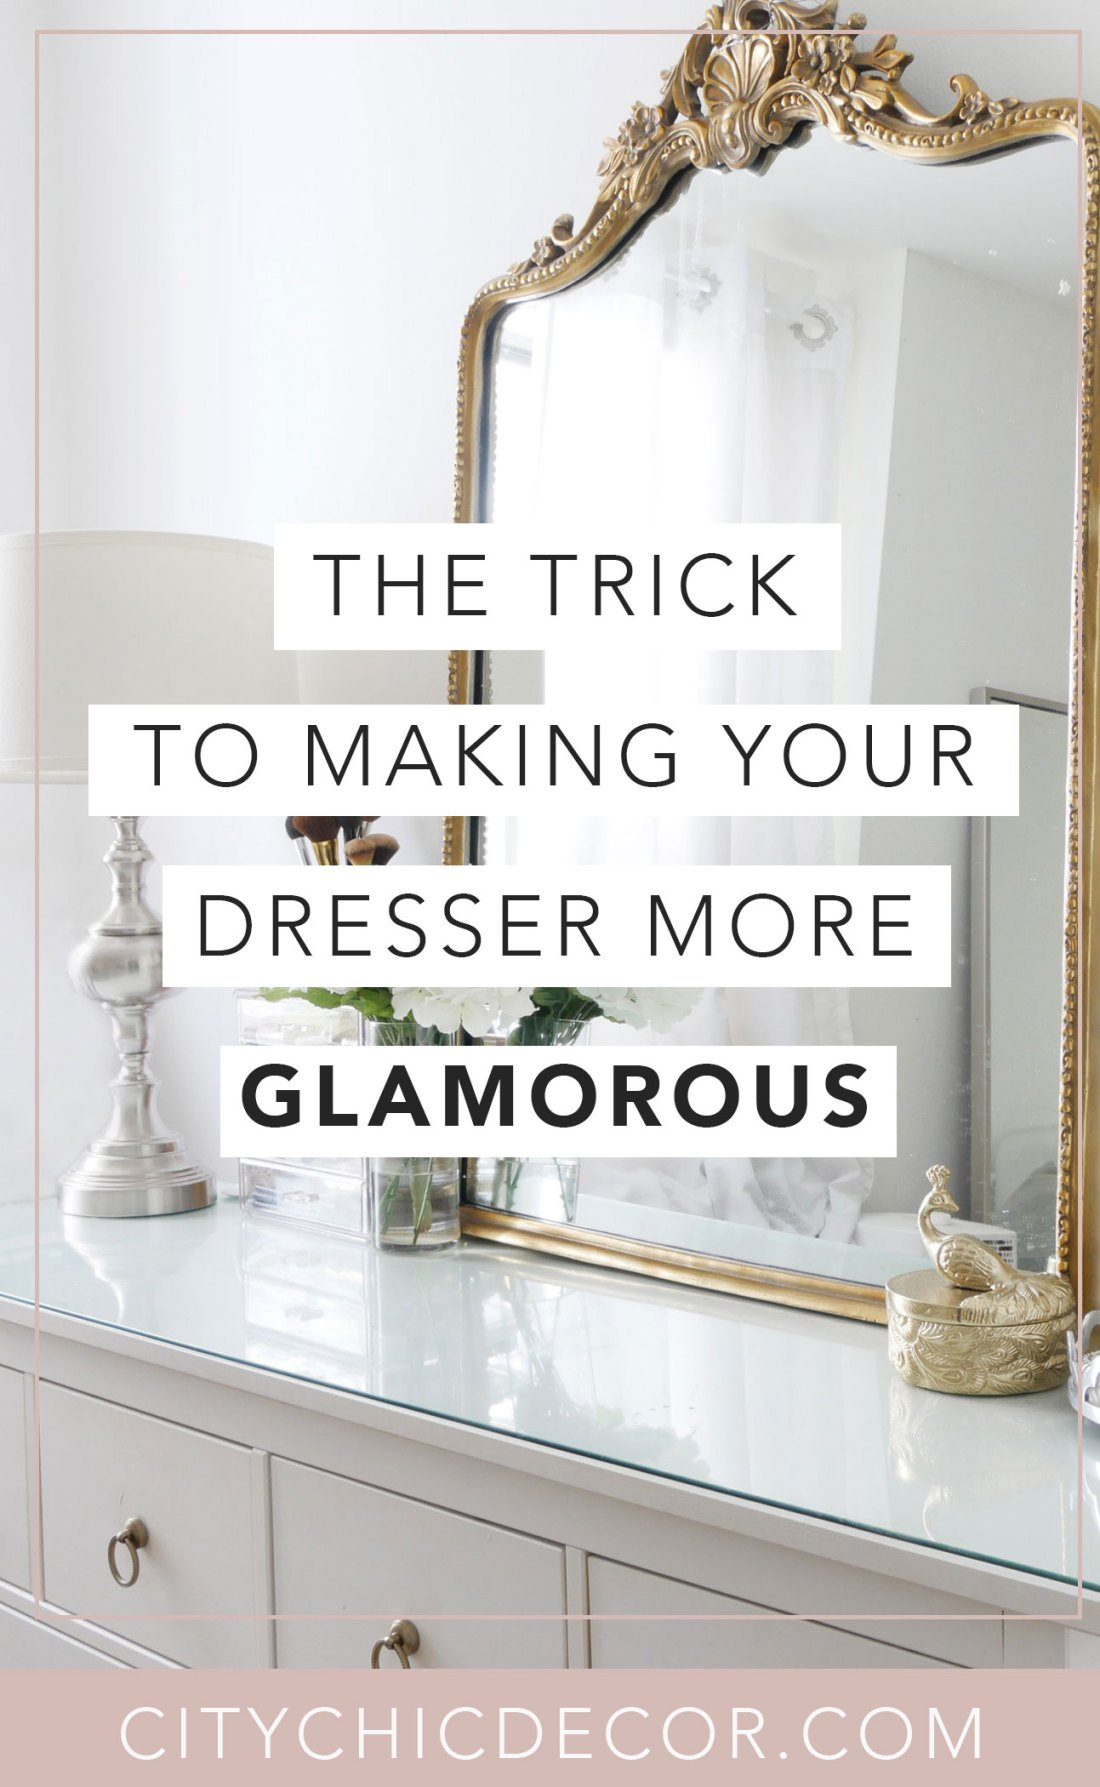 Struggle to find ways to create a glam dresser? Not sure how to decorate it with decor? This one trick will transform your dresser and make it a show-stopper! #dresserdecor #dressermakeover #smallbedroomideas #bedroomideas #bedroomdecor